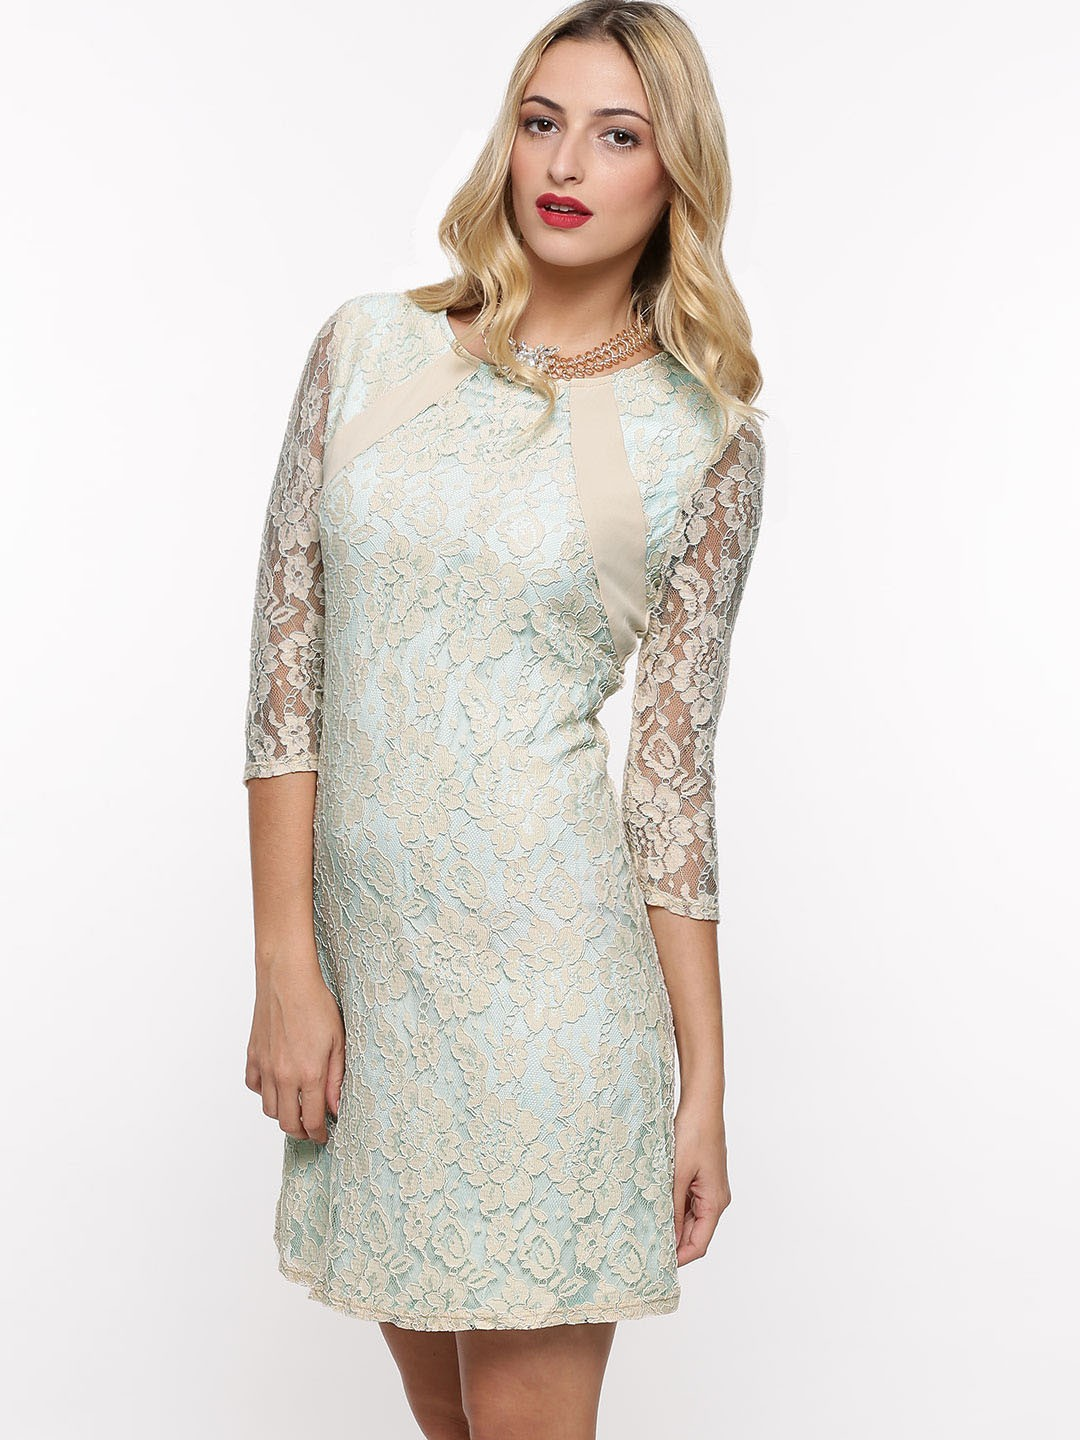 Shop for and buy tunic dresses online at Macy's. Find tunic dresses at Macy's.